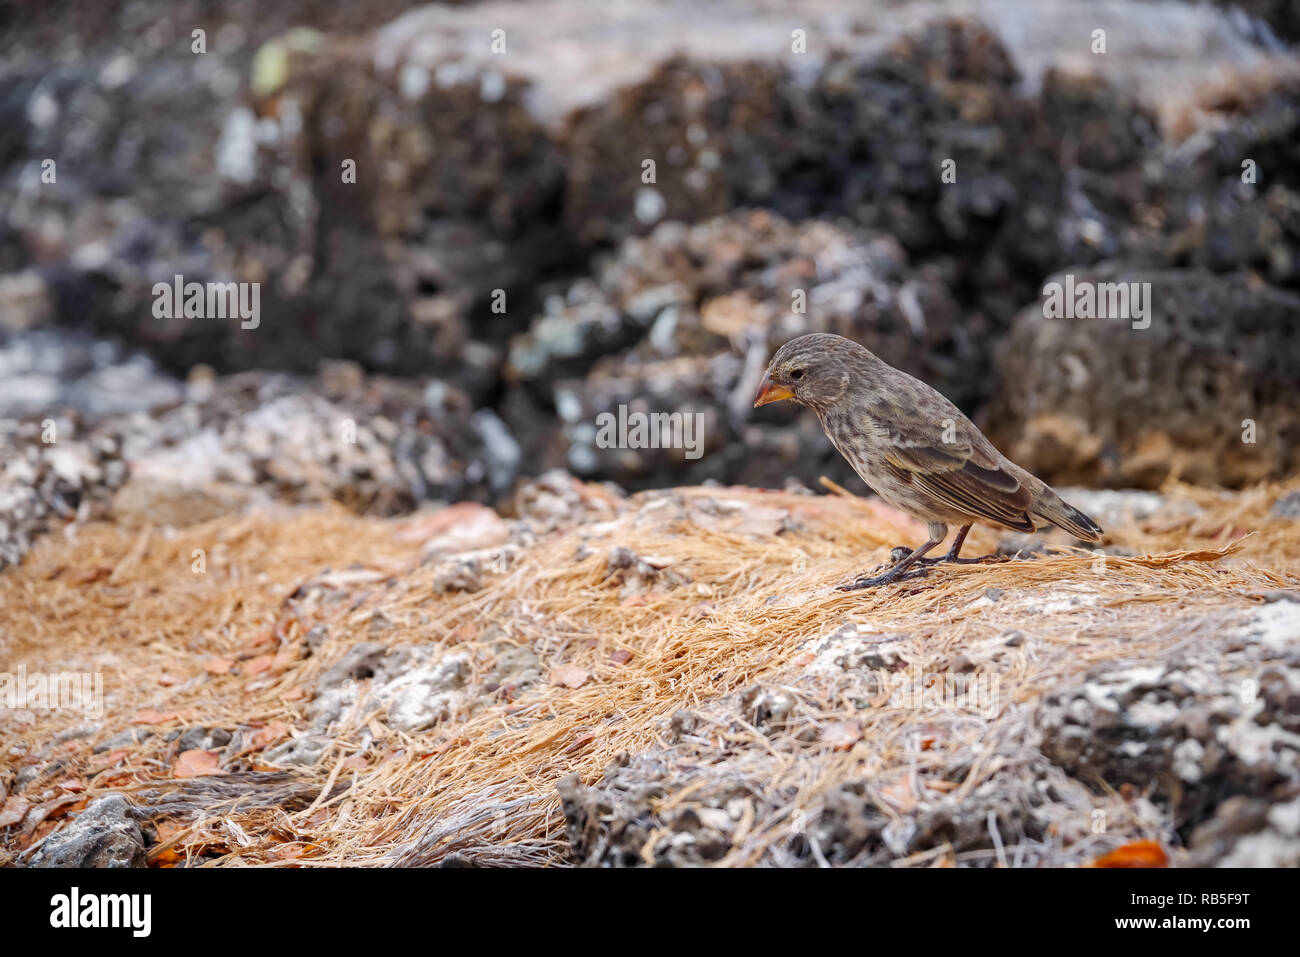 Galapagos Finch Geospiza fortis male perched on a rock in Santa Cruz, Galapagos Islands - Stock Image